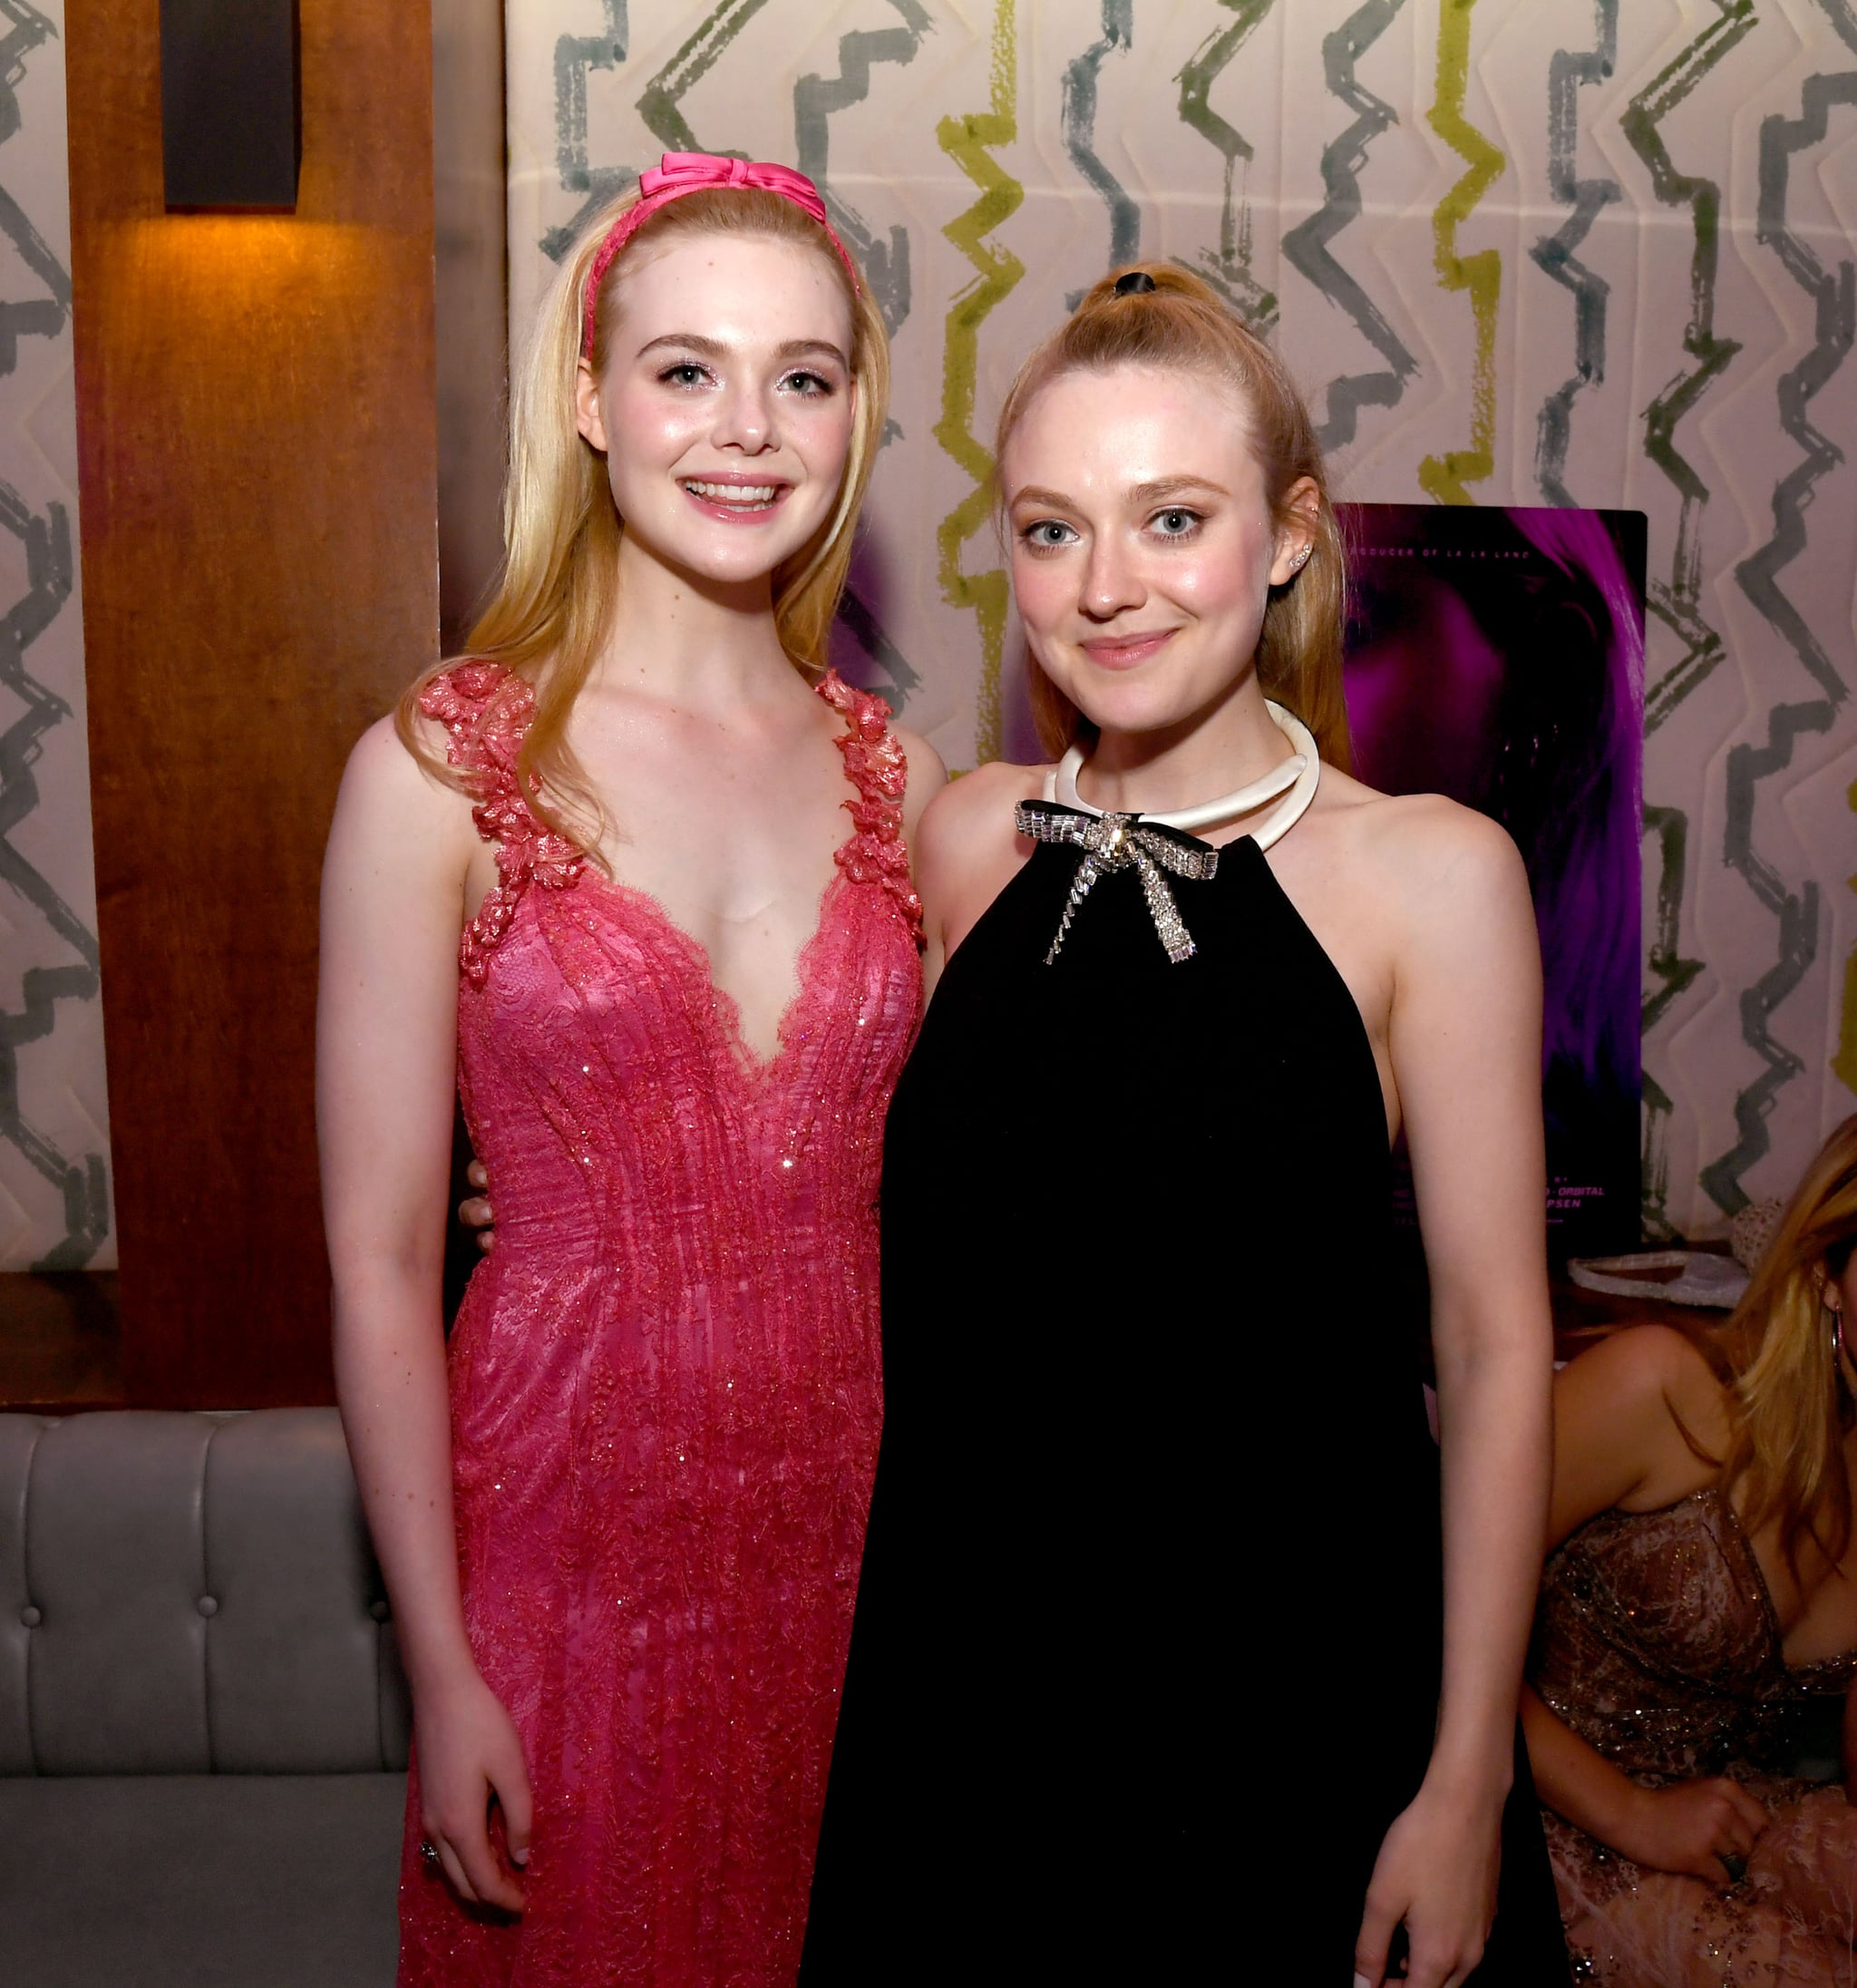 HOLLYWOOD, CALIFORNIA - APRIL 02: Elle Fanning (L) and Dakota Fanning pose at the after party for a special screening of Bleeker Street's